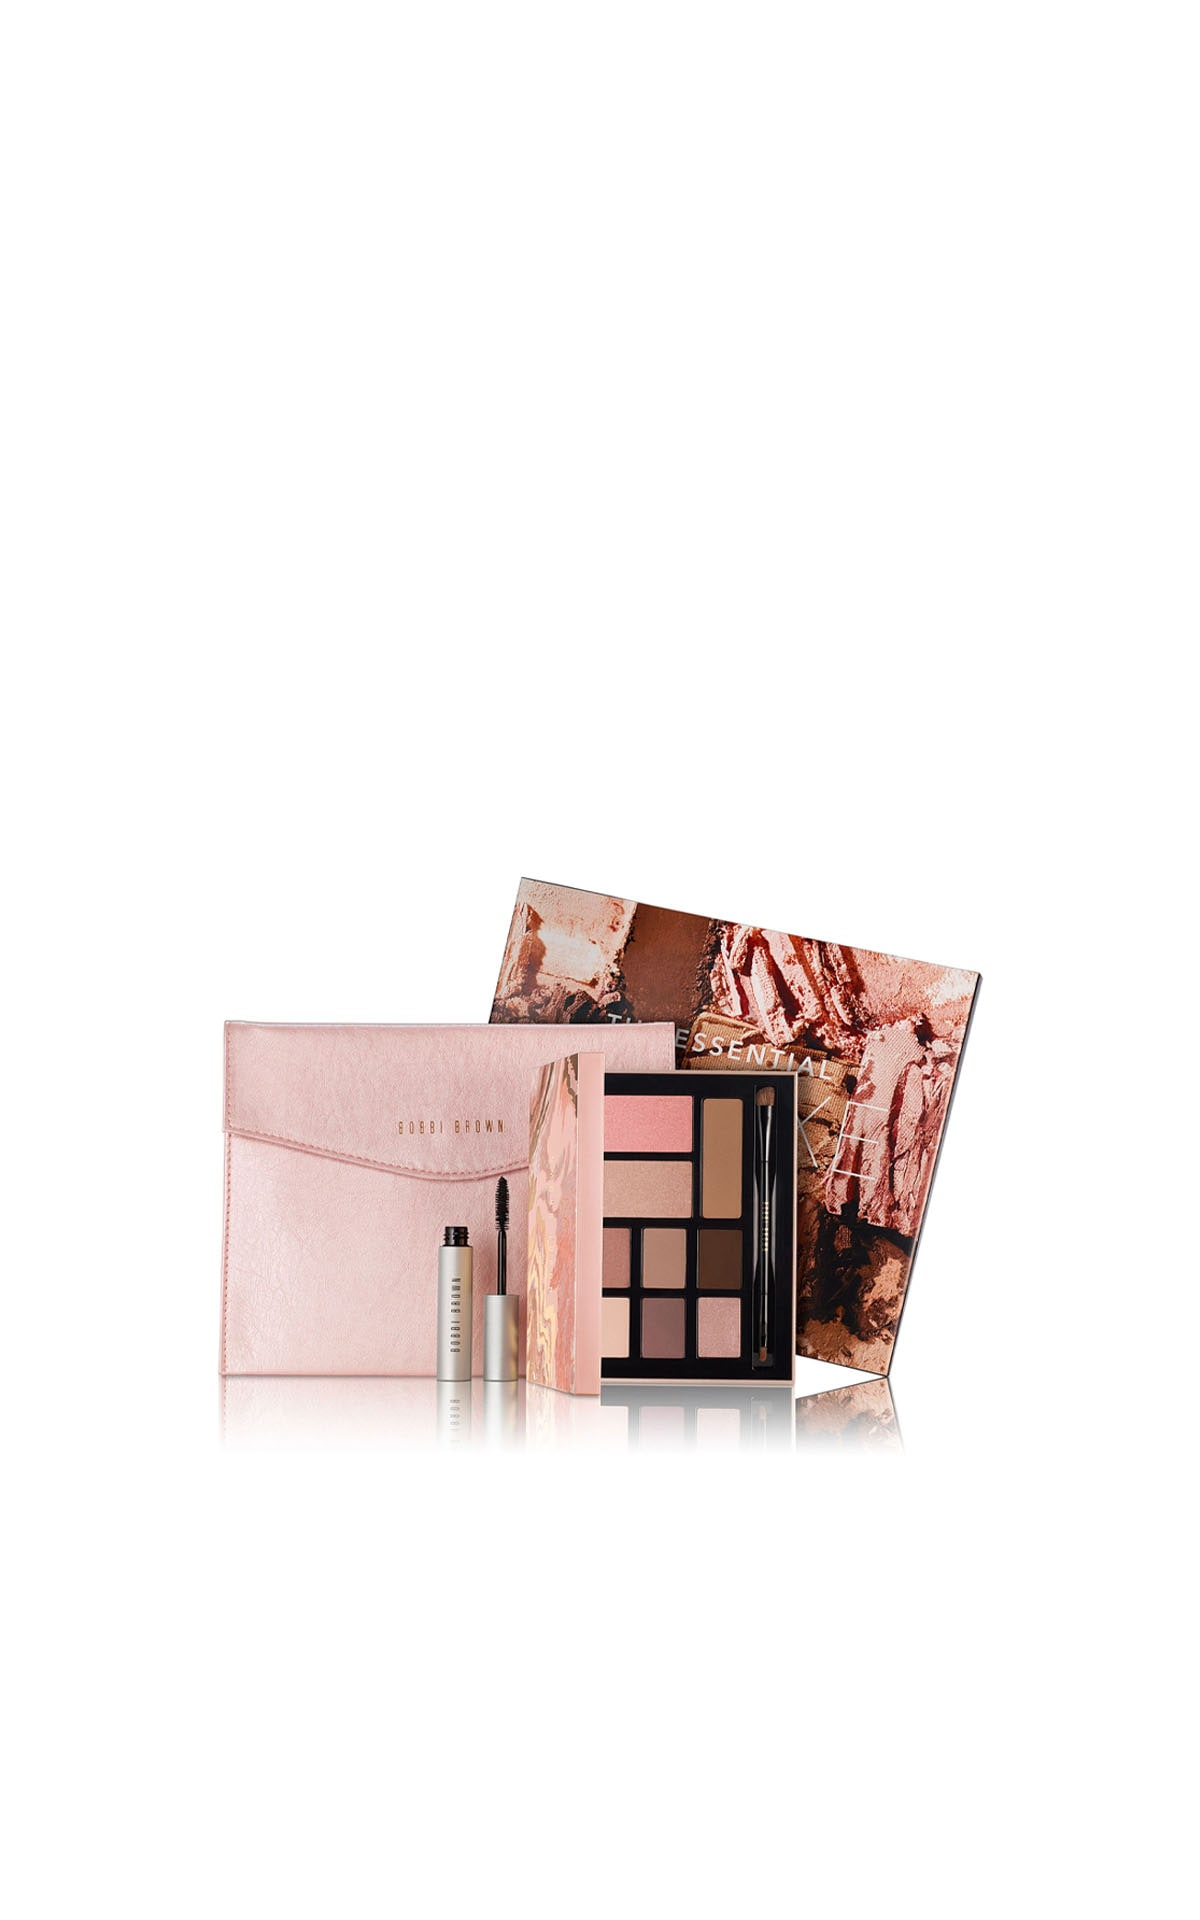 Bobbi Brown The Essentiel Deluxe eyeshadow & face palette